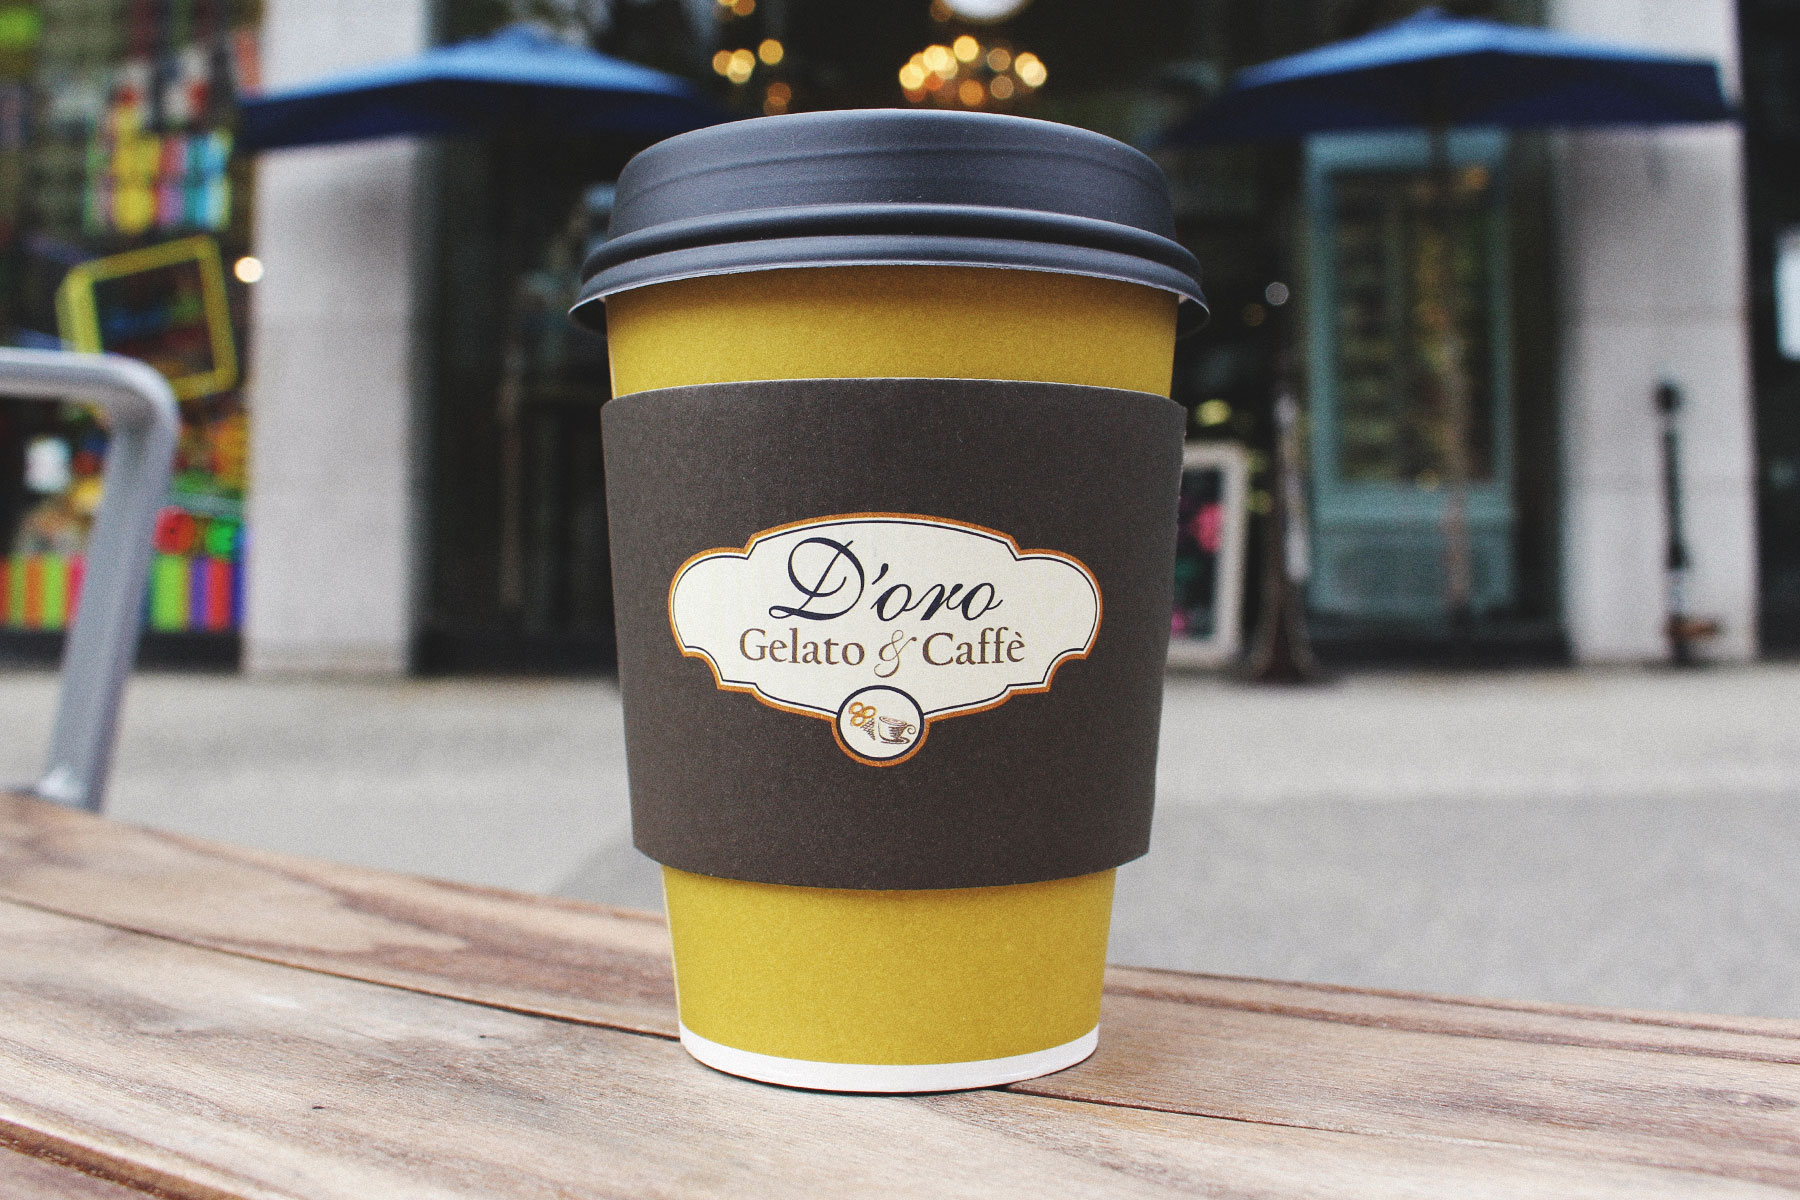 cup of coffee from d'oro